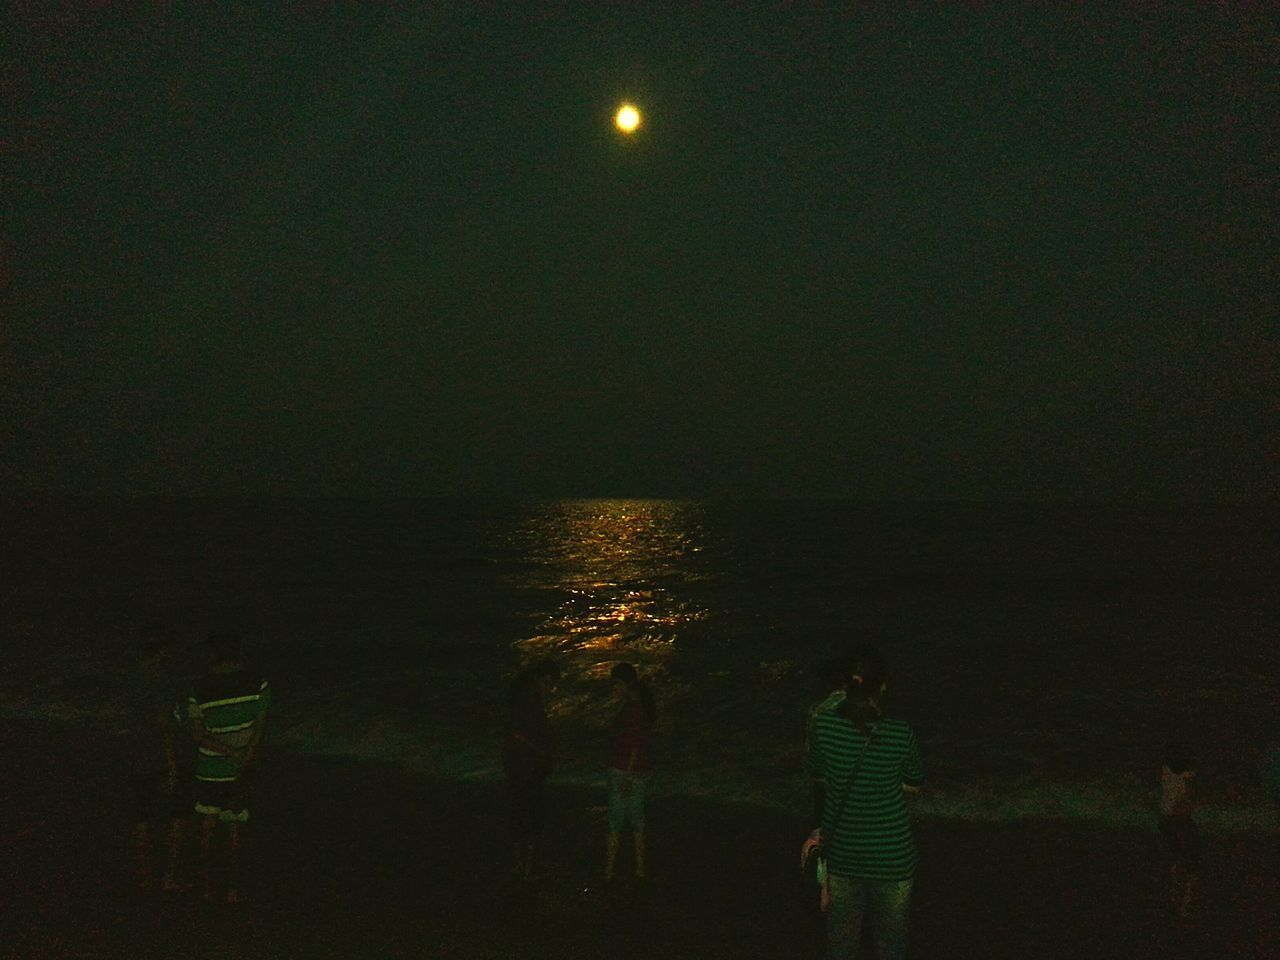 night, rear view, sea, real people, standing, moon, illuminated, outdoors, nature, beach, lifestyles, scenics, water, beauty in nature, sky, one person, horizon over water, astronomy, people